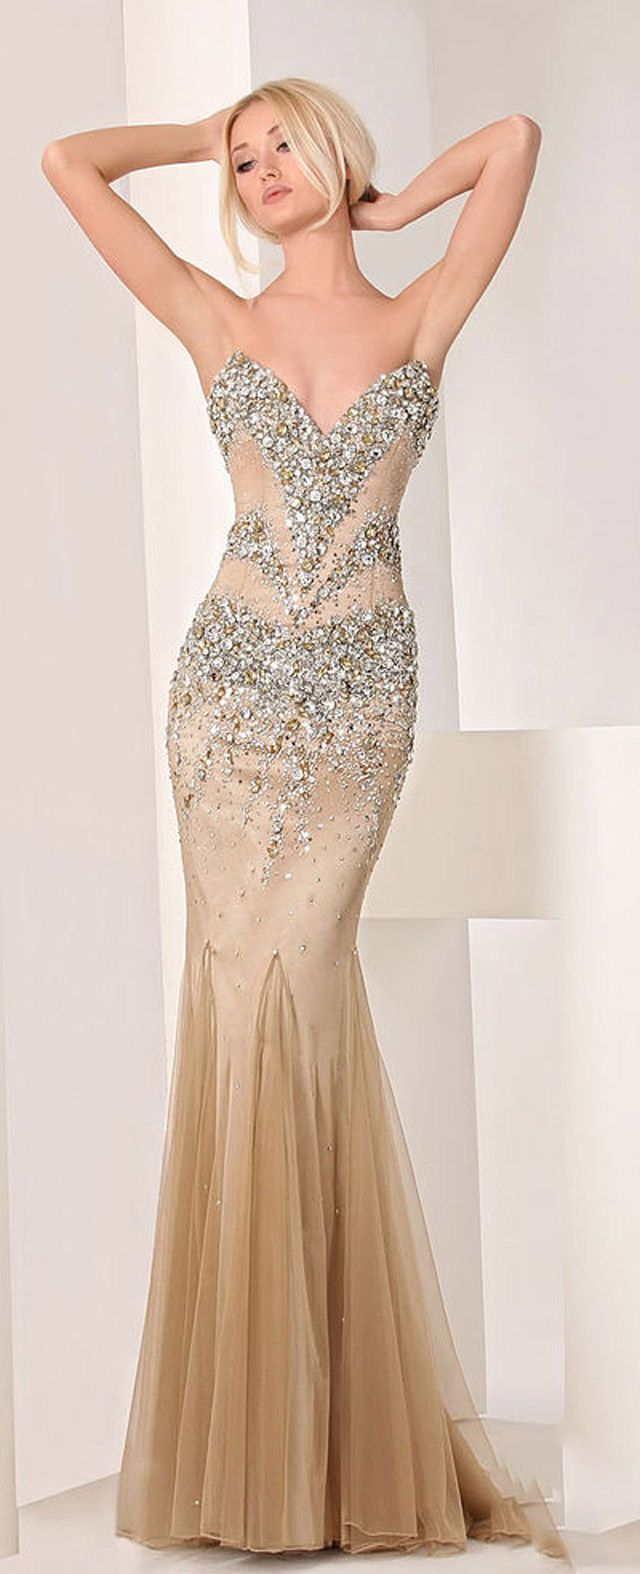 Haute Couture collection 2013 of evening dresses and gowns. | prom ...